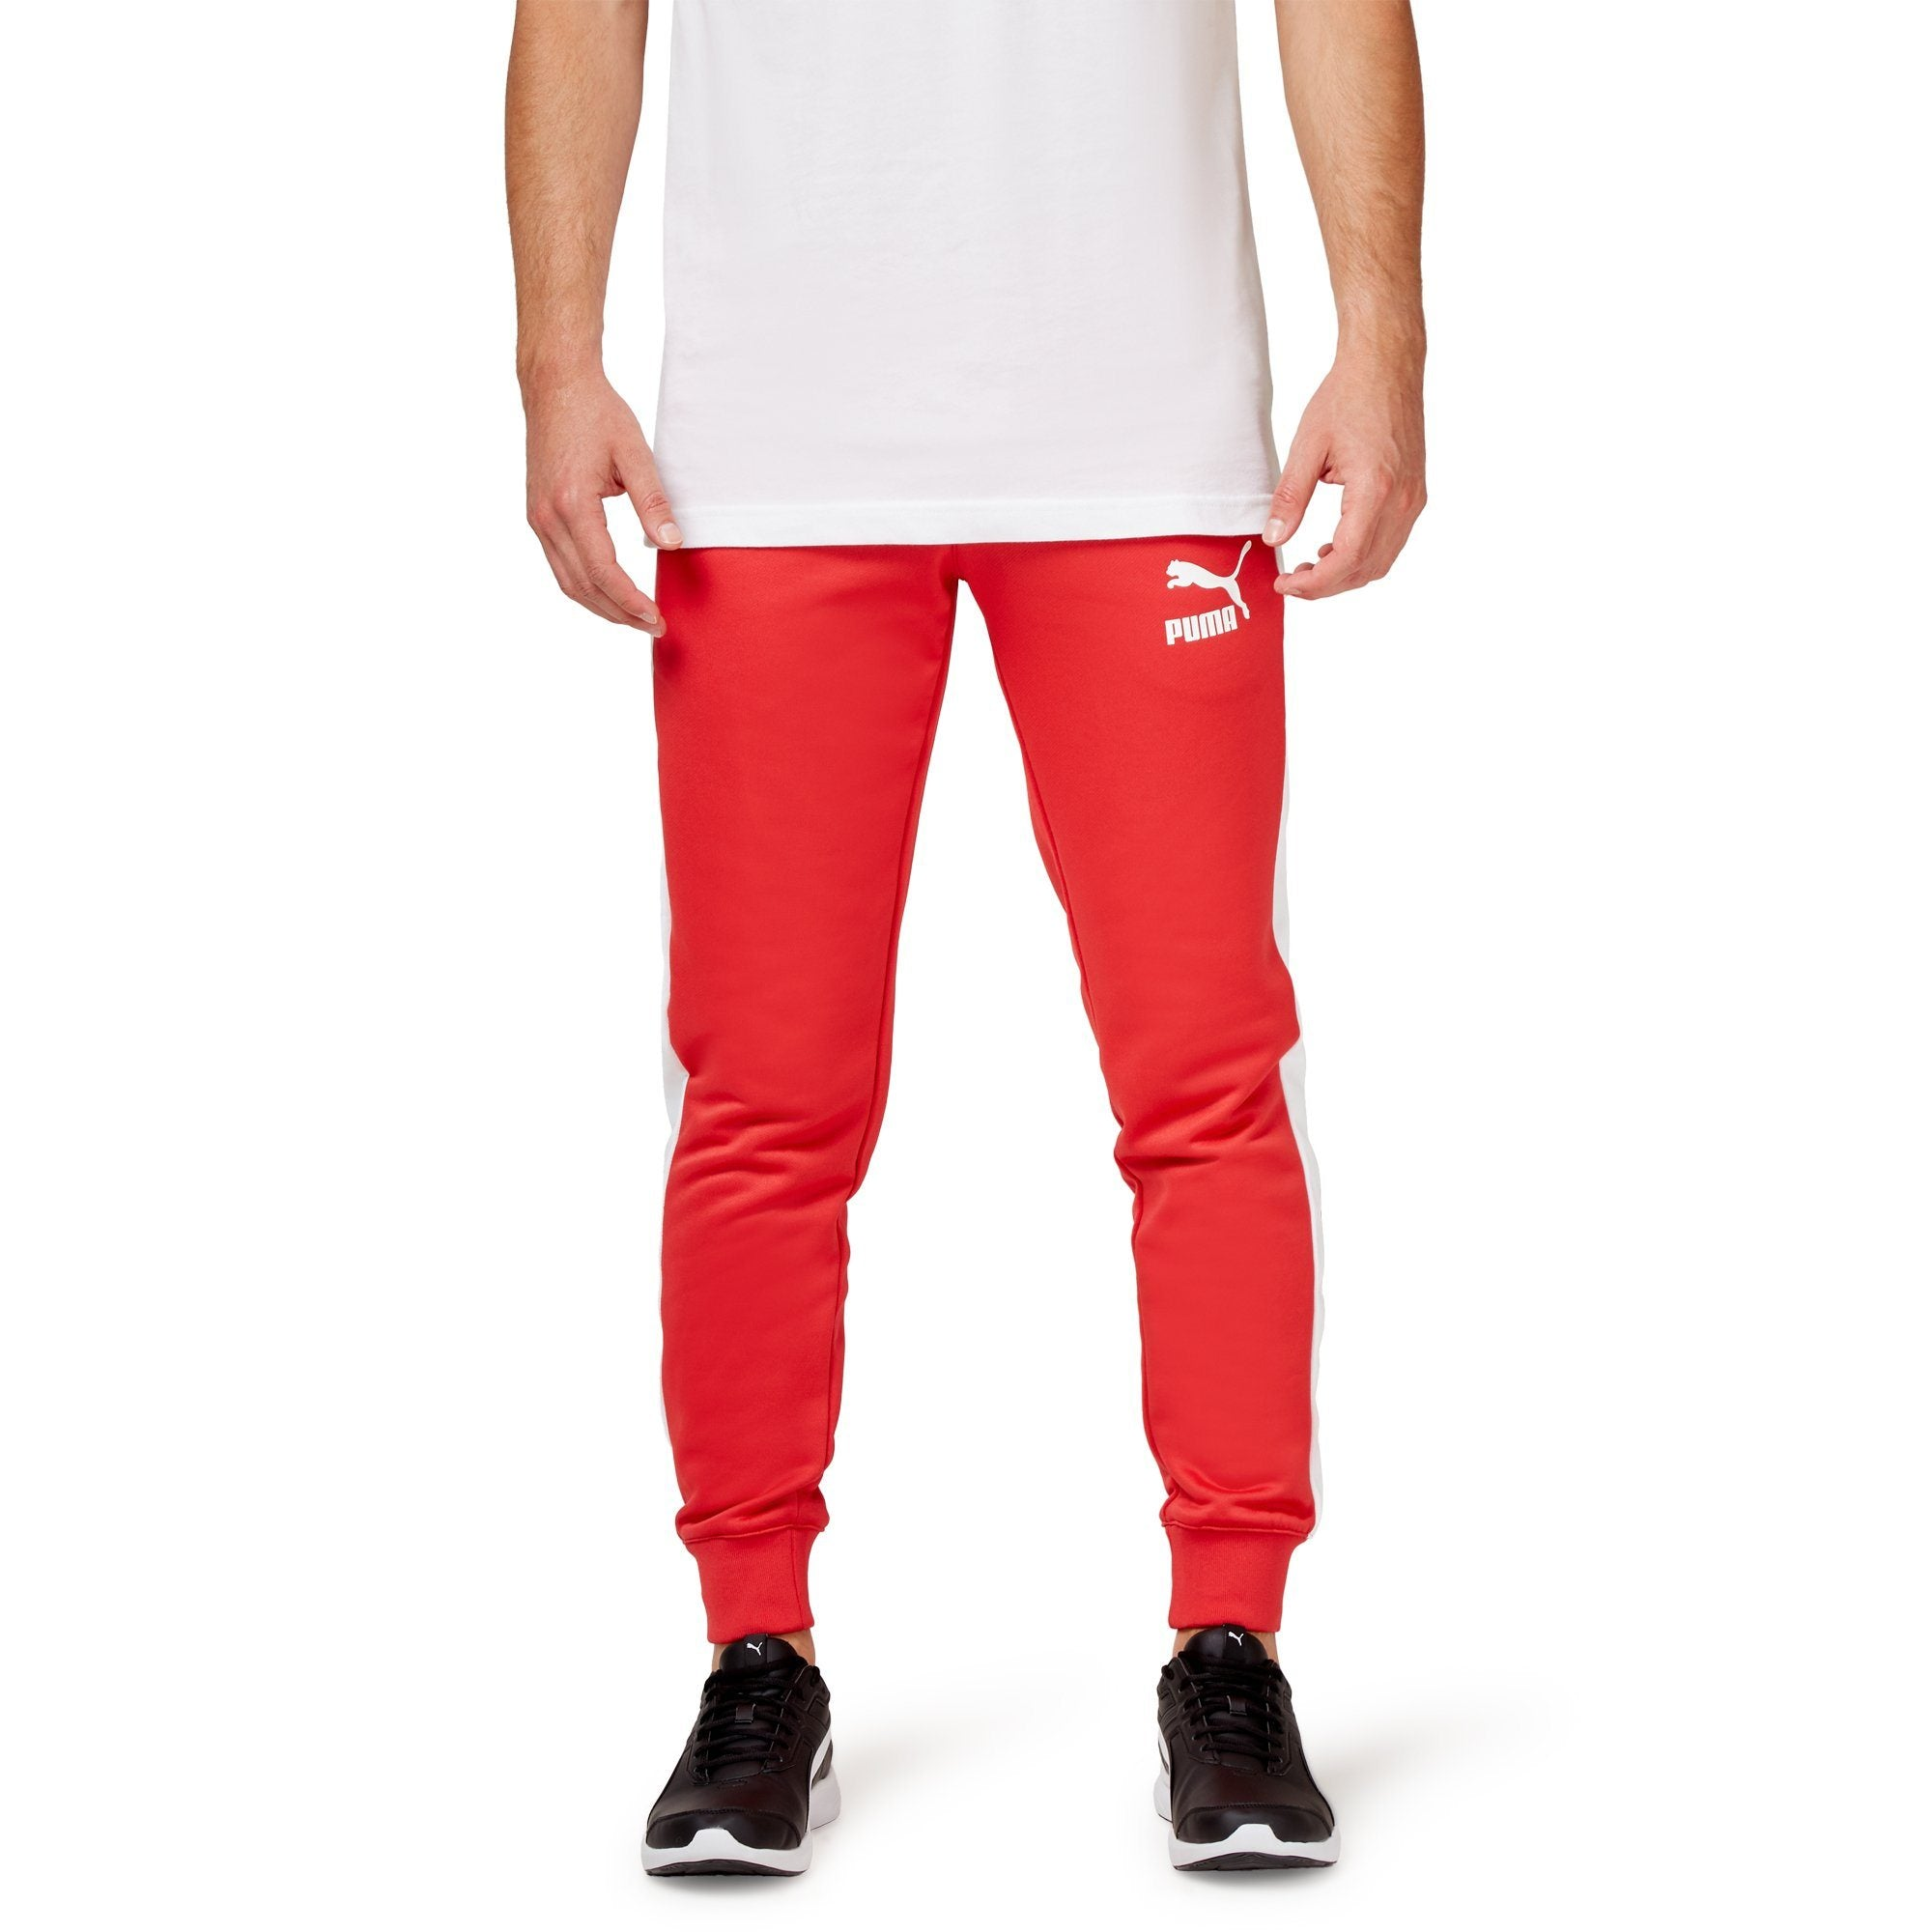 Puma Classics T7 Track Pants - Red Apparel Puma  (2122605232187)